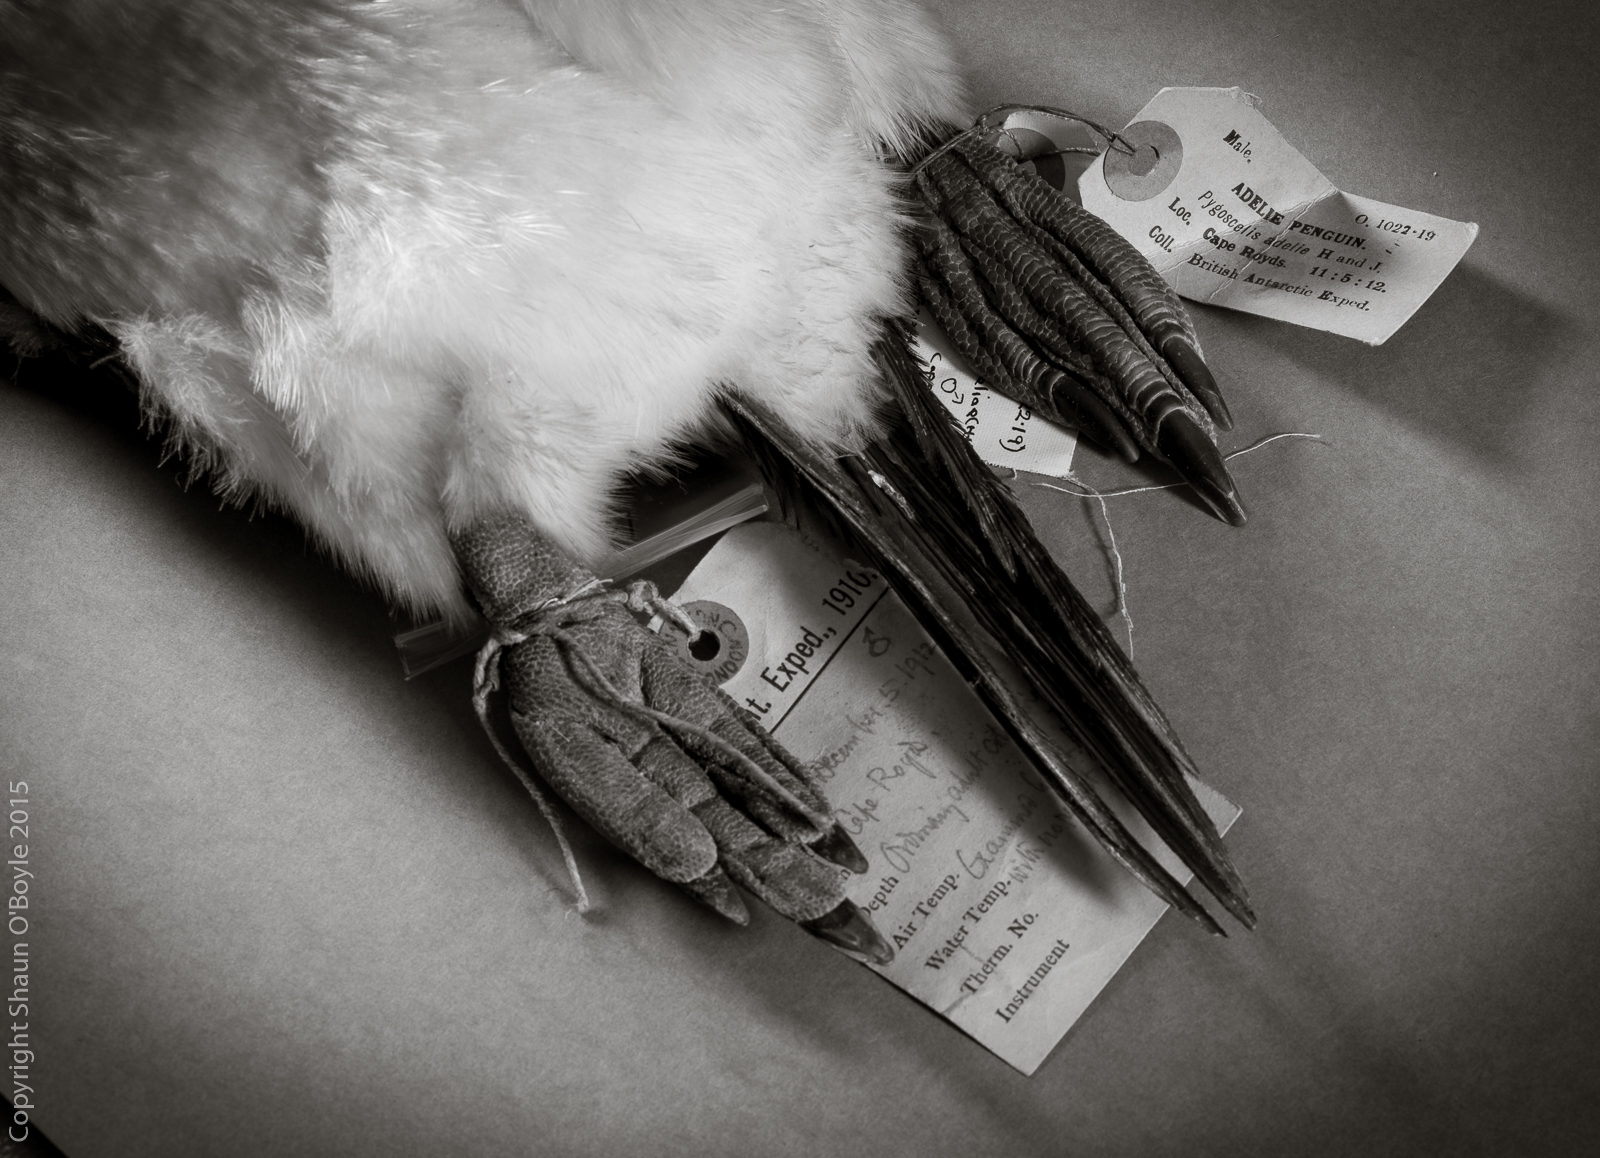 Unfortunate Adelie Penguin feet collected during the Terra Nova Expedition